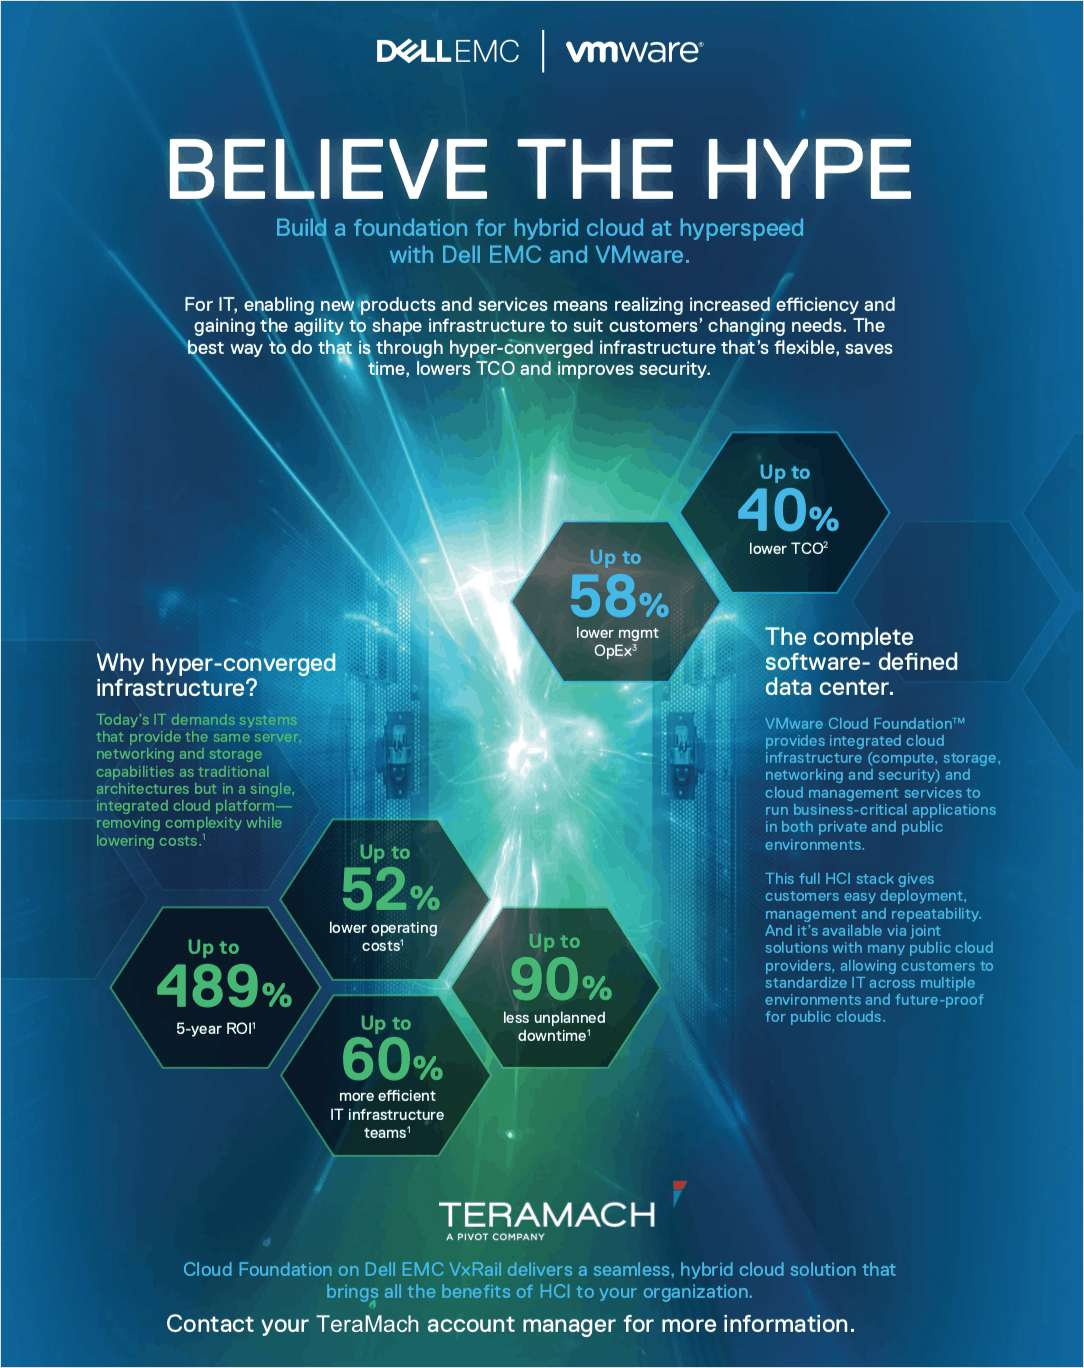 Why Hyper-Converged Infrastructure?